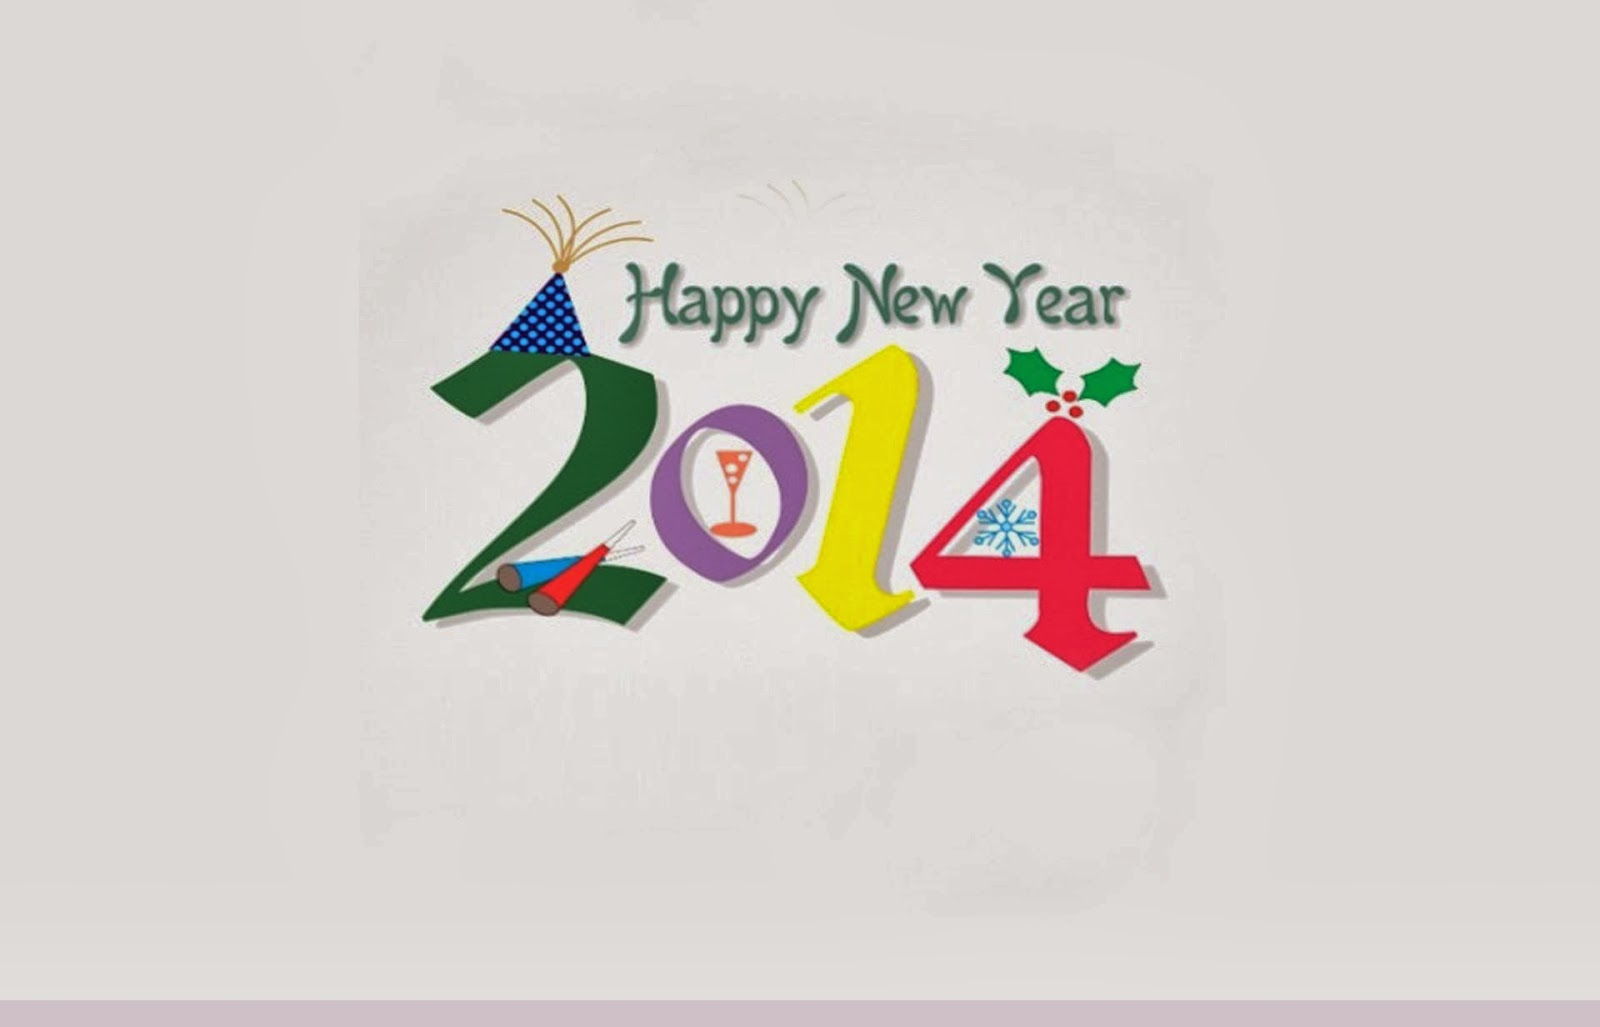 Happy New Year 2014 Clipart Image Free Download Jpg